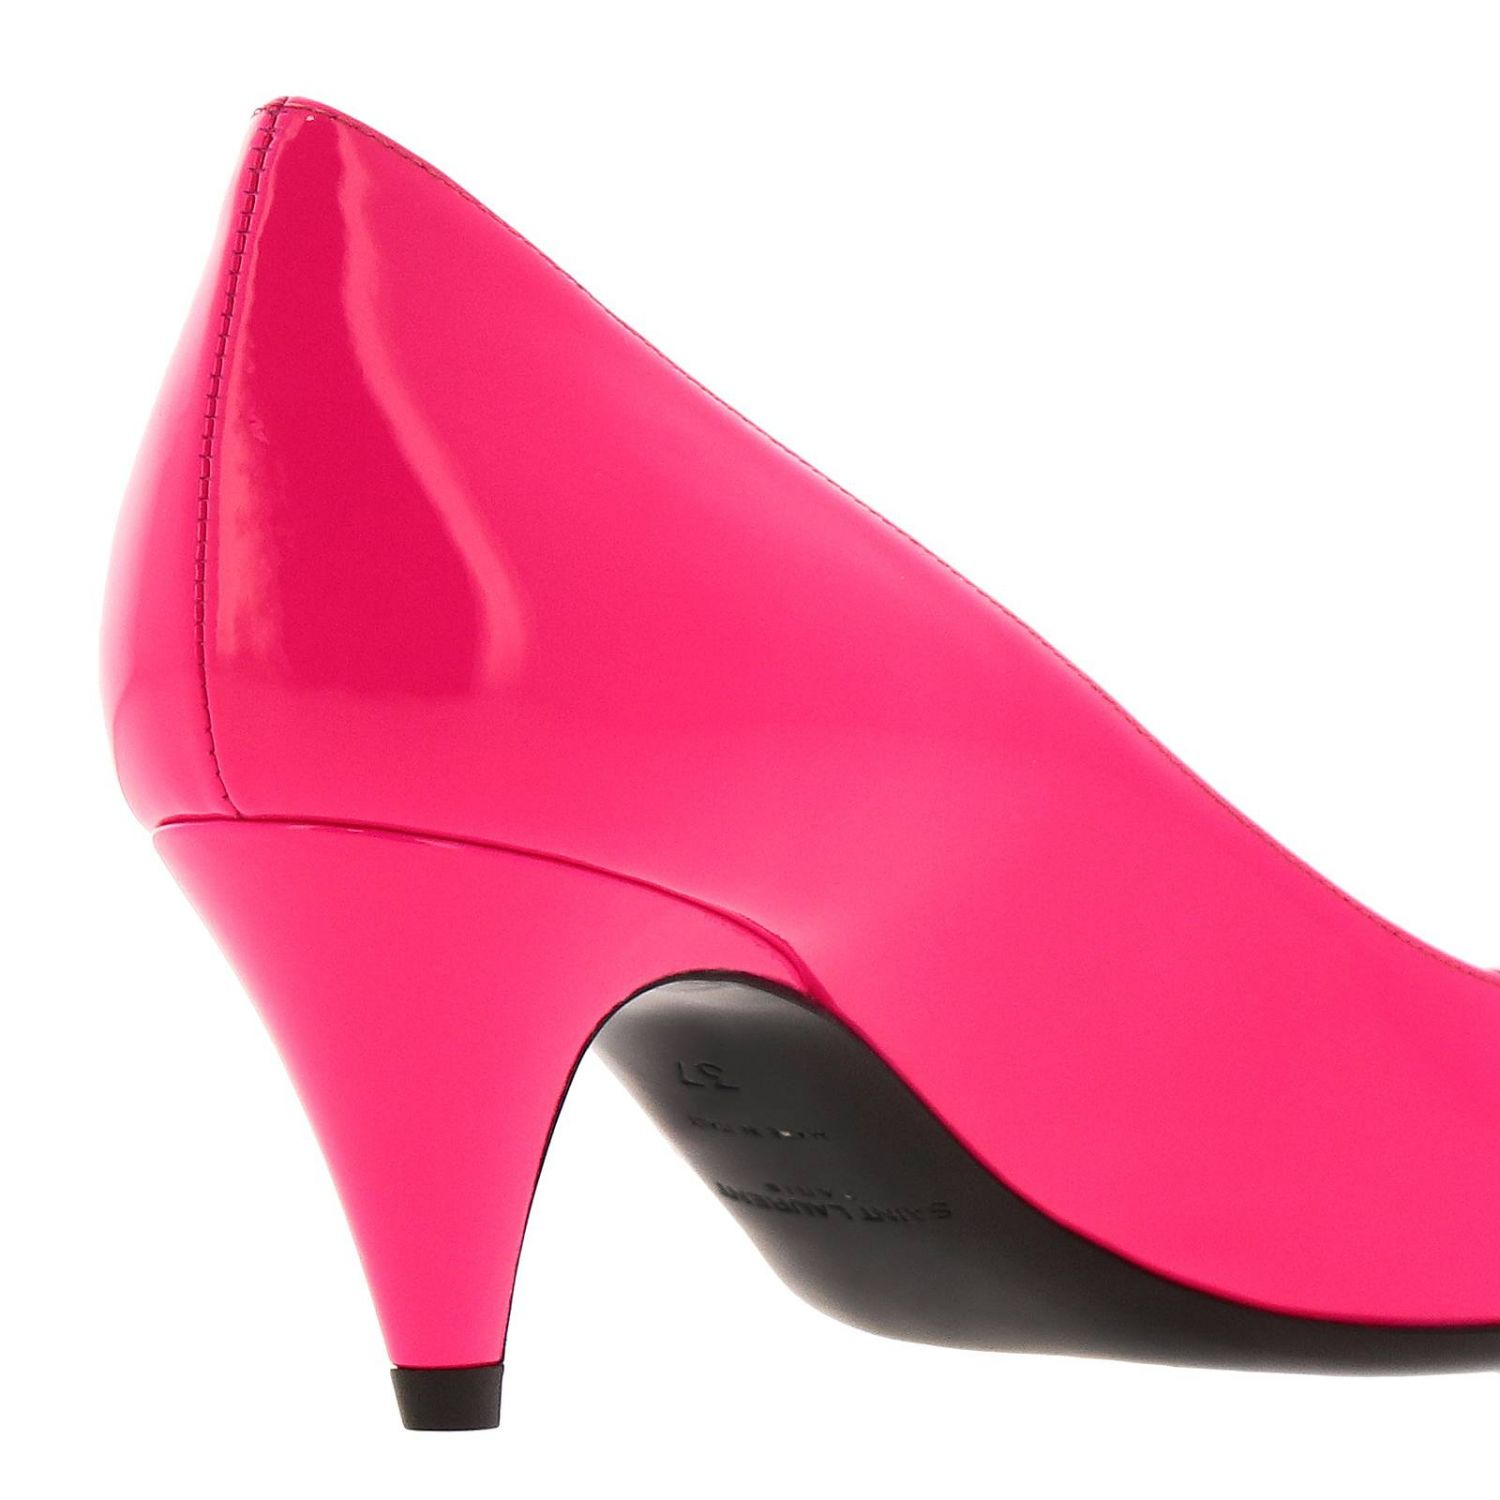 Charlotte Saint Laurent pointed toe in fluo paint fuchsia 4